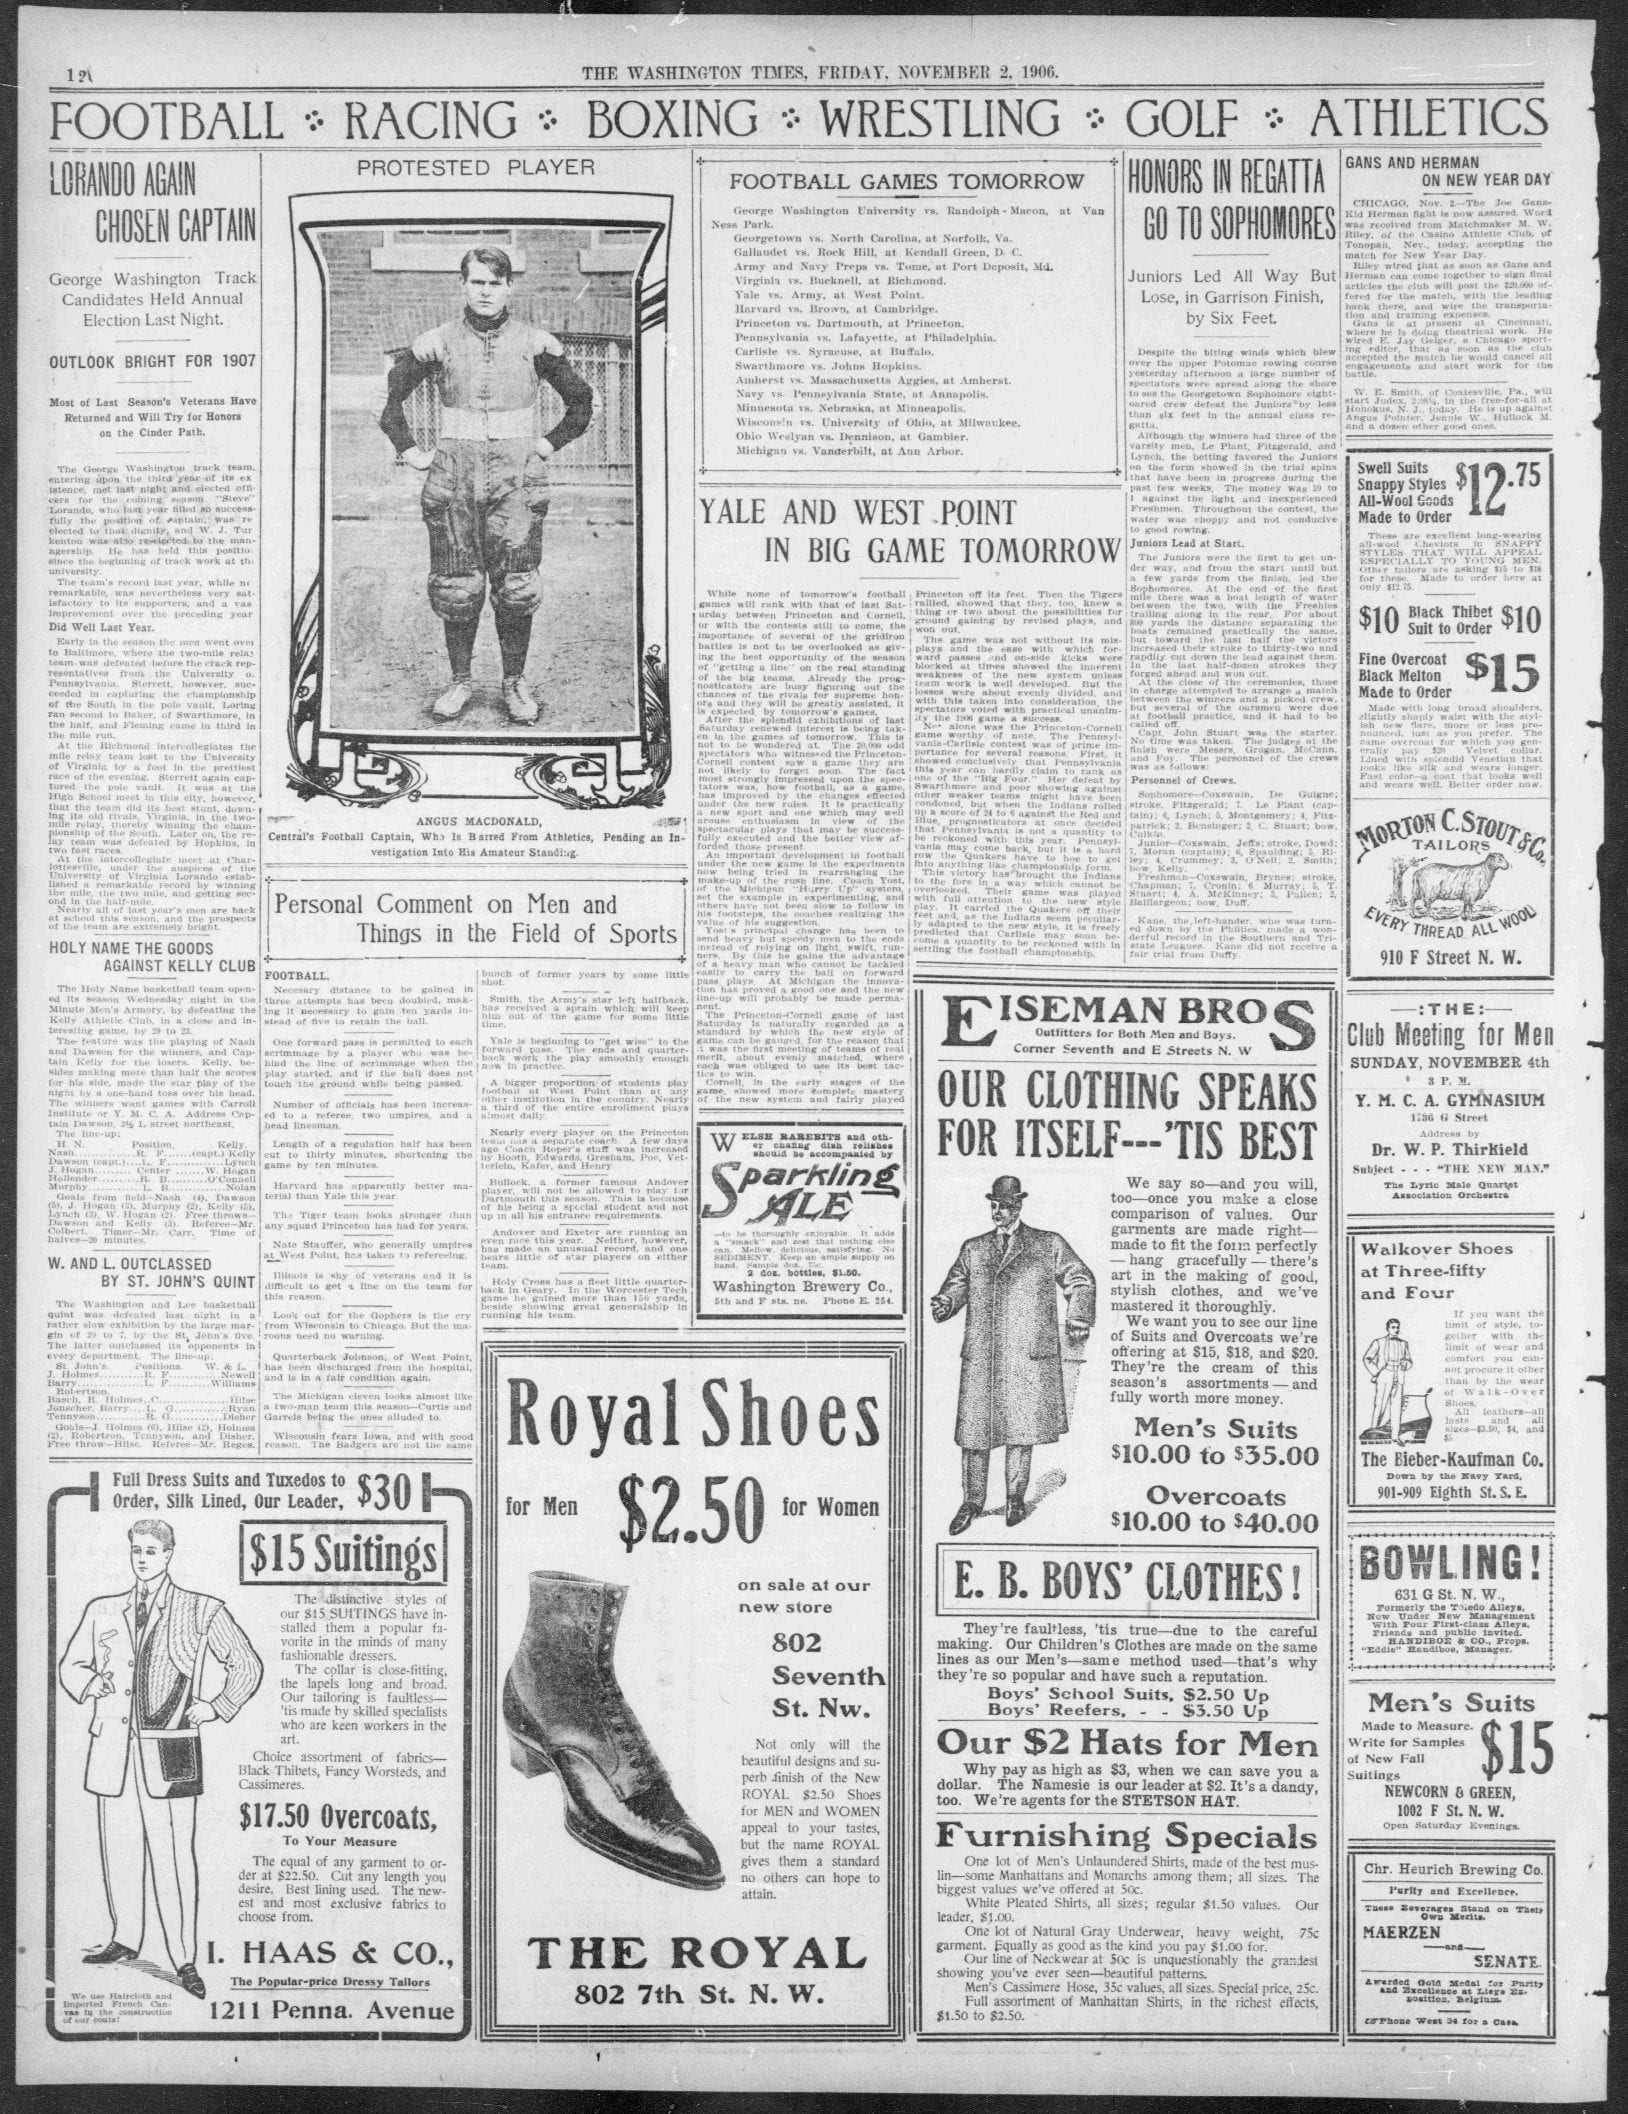 November 2nd, 1906: High School Football Player's Amateur Status Questioned